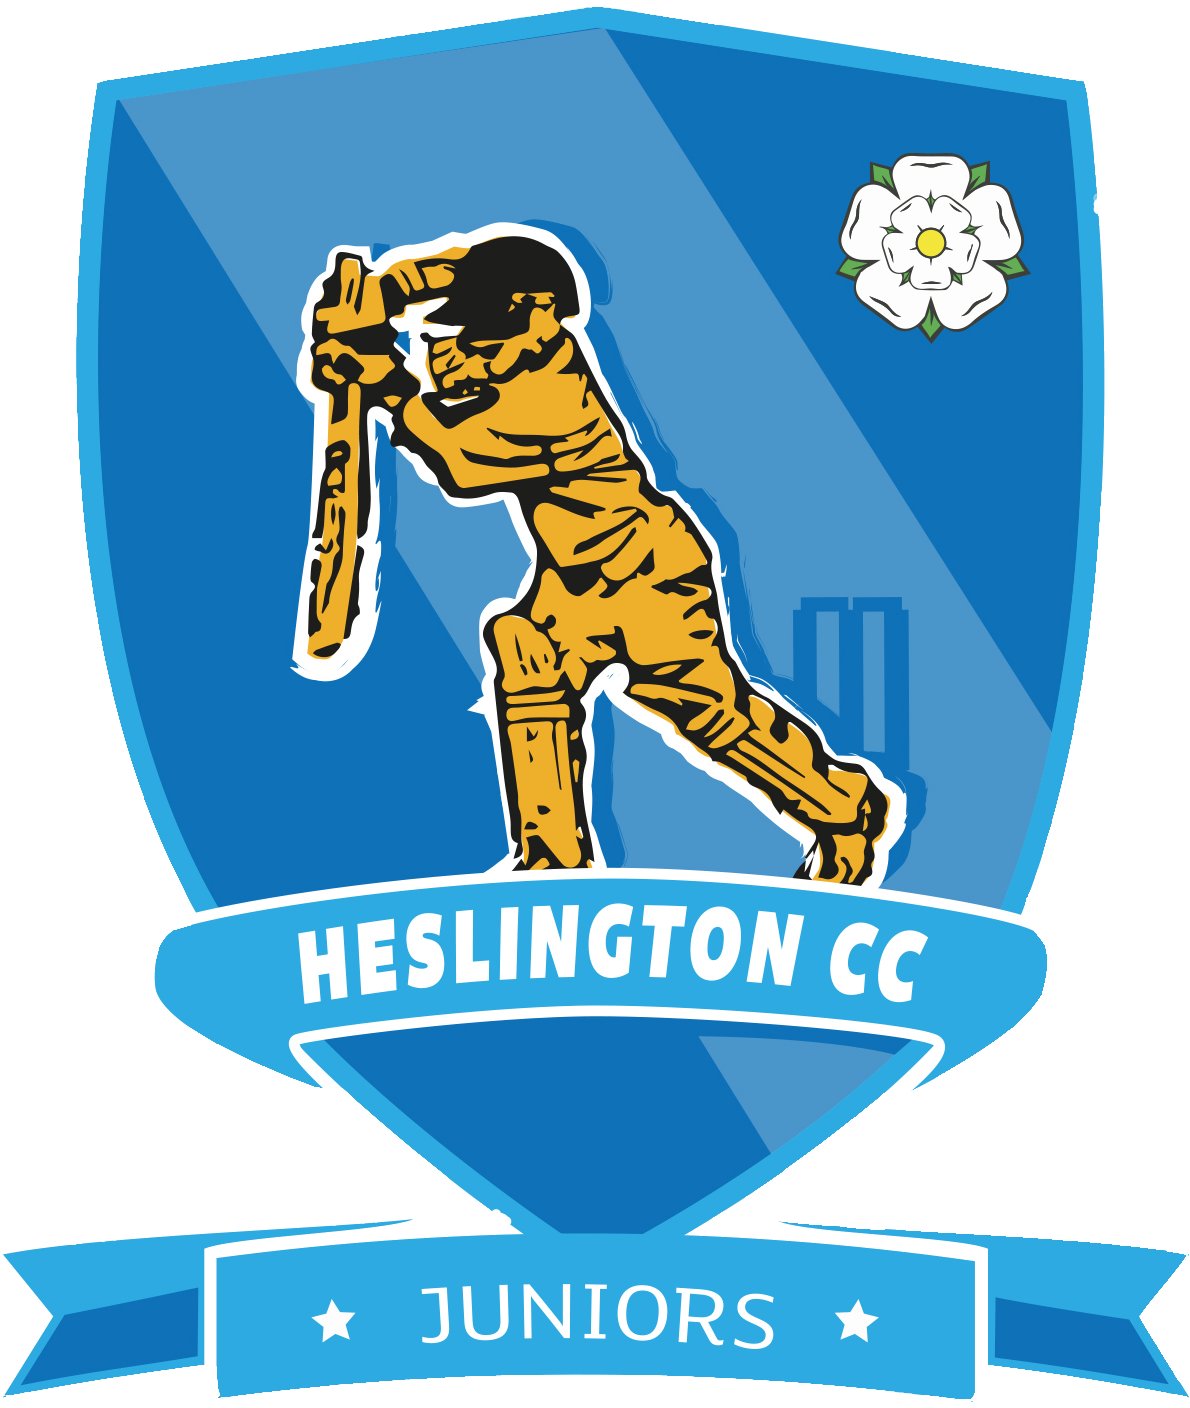 Cricket clipart cricket champion. Heslington sponsorship